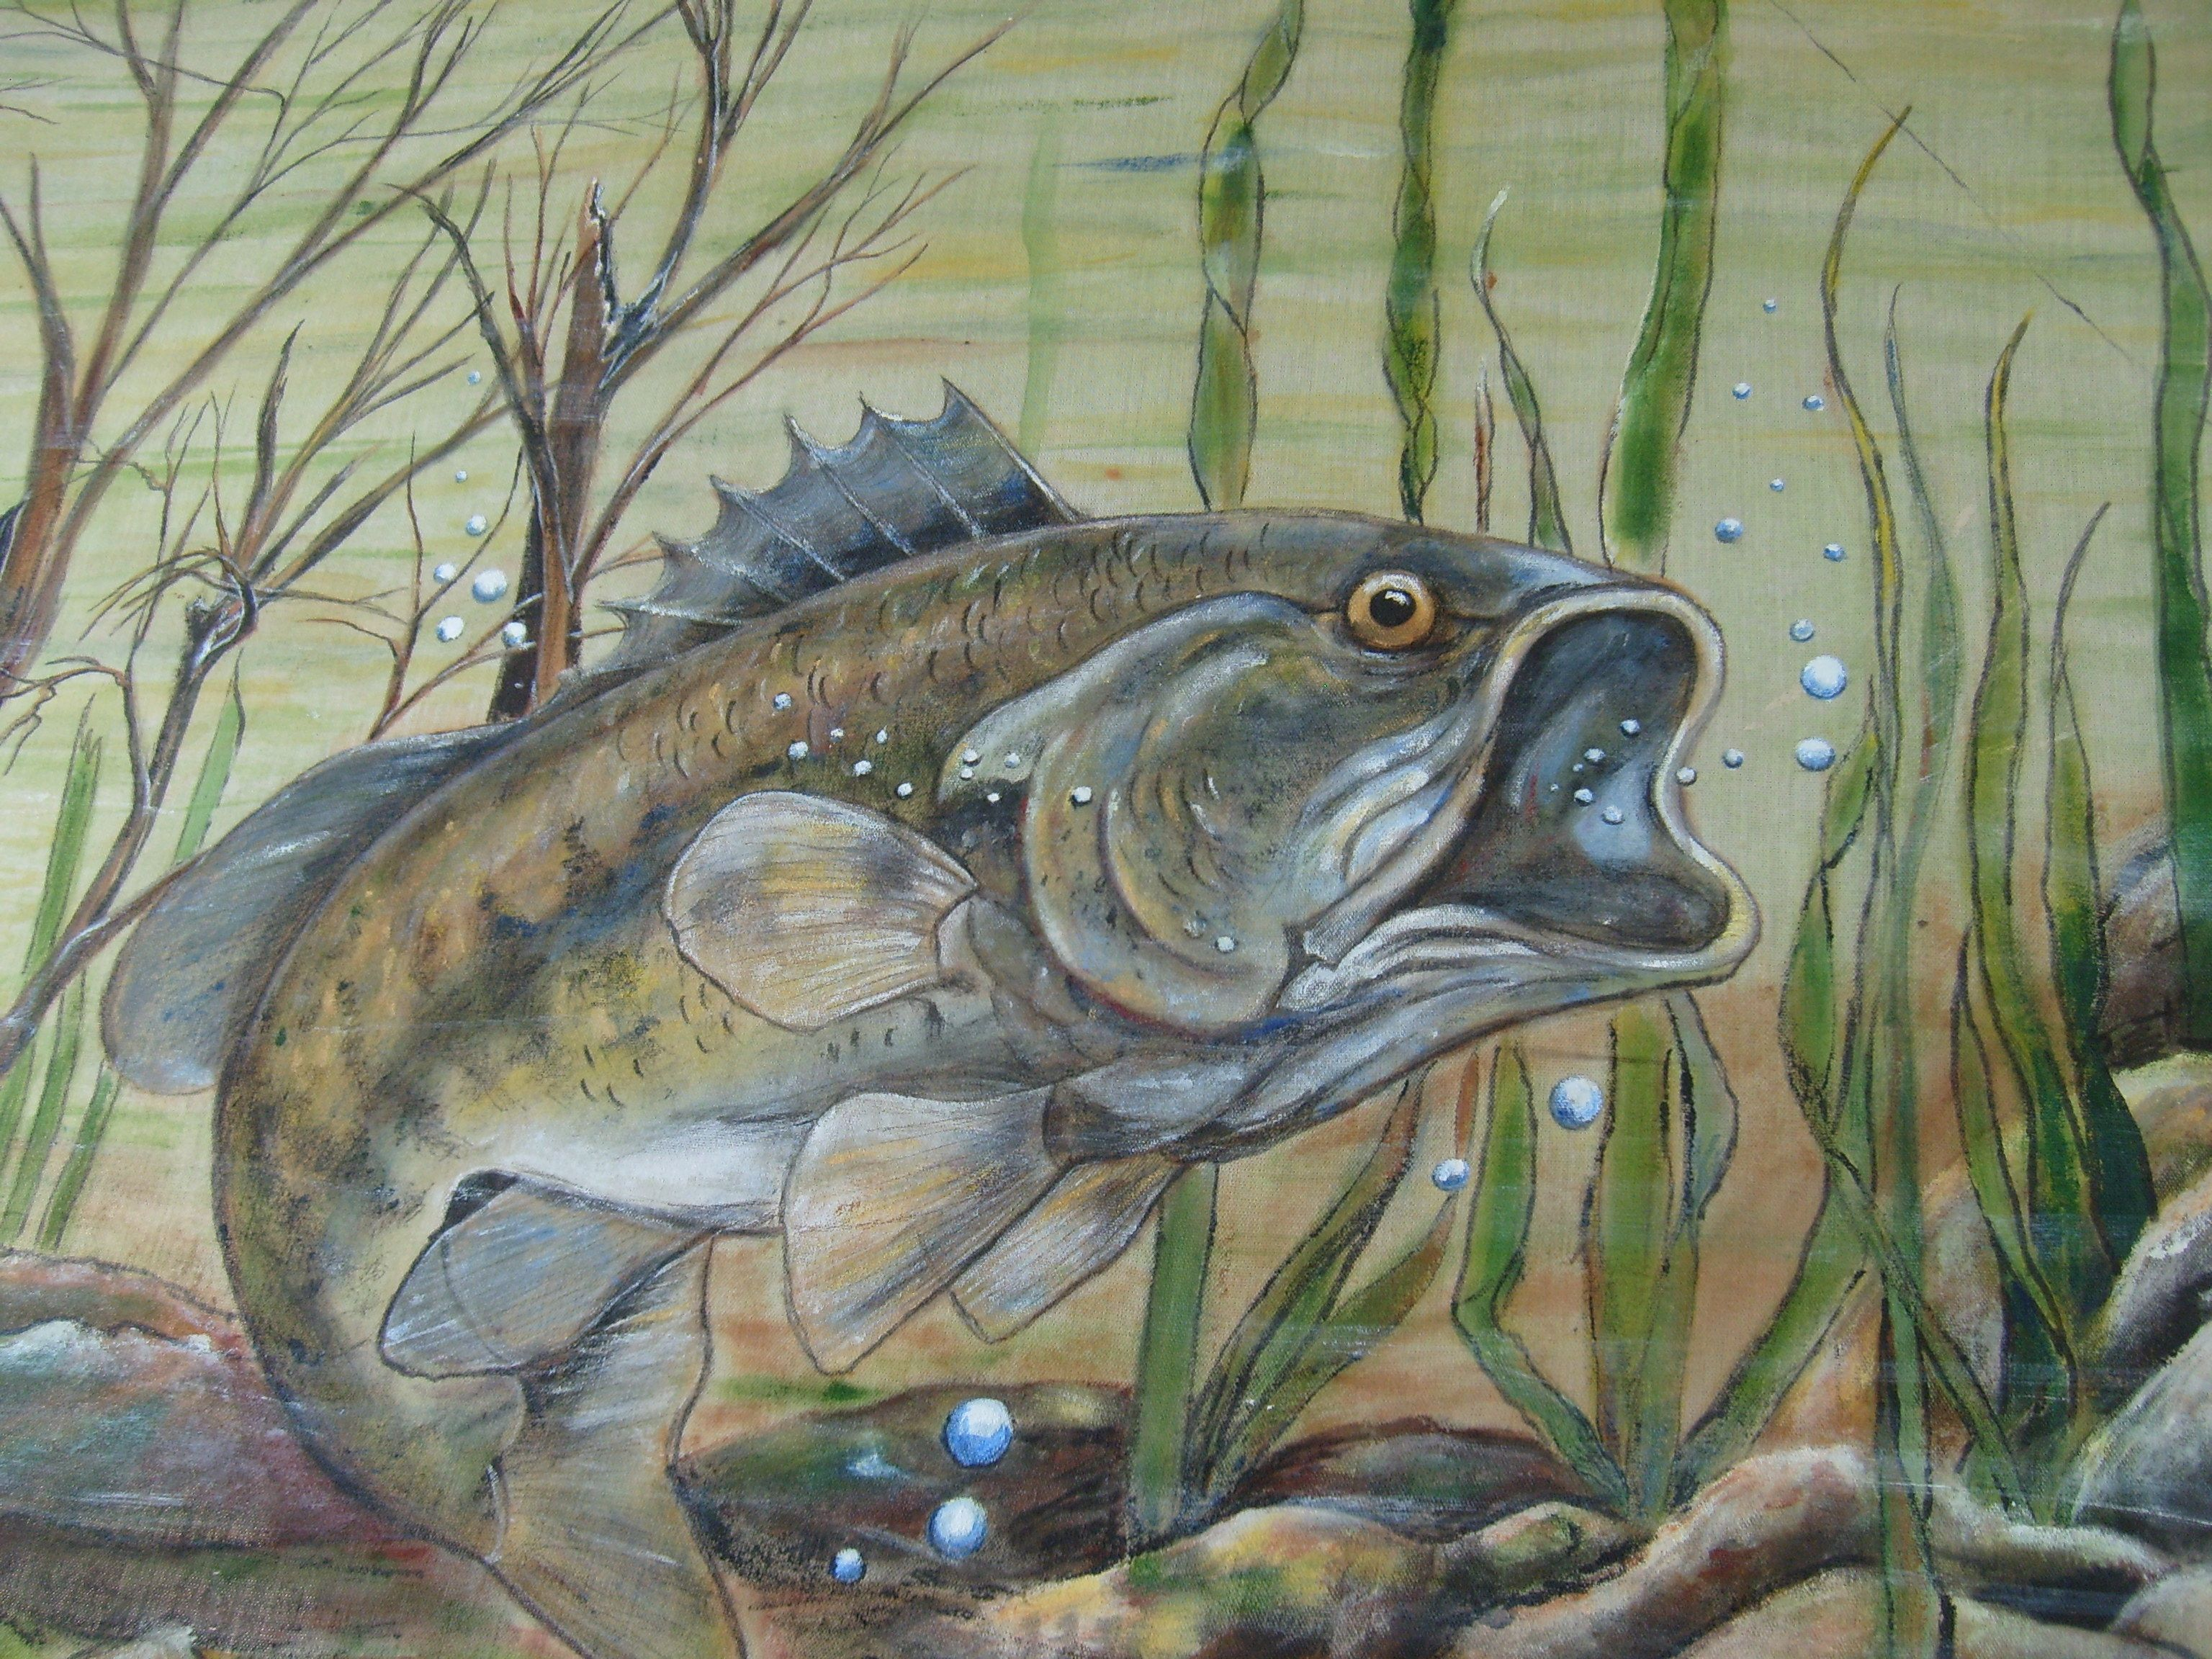 Large mouth bass painting diy crafts pinterest for Bass fish painting